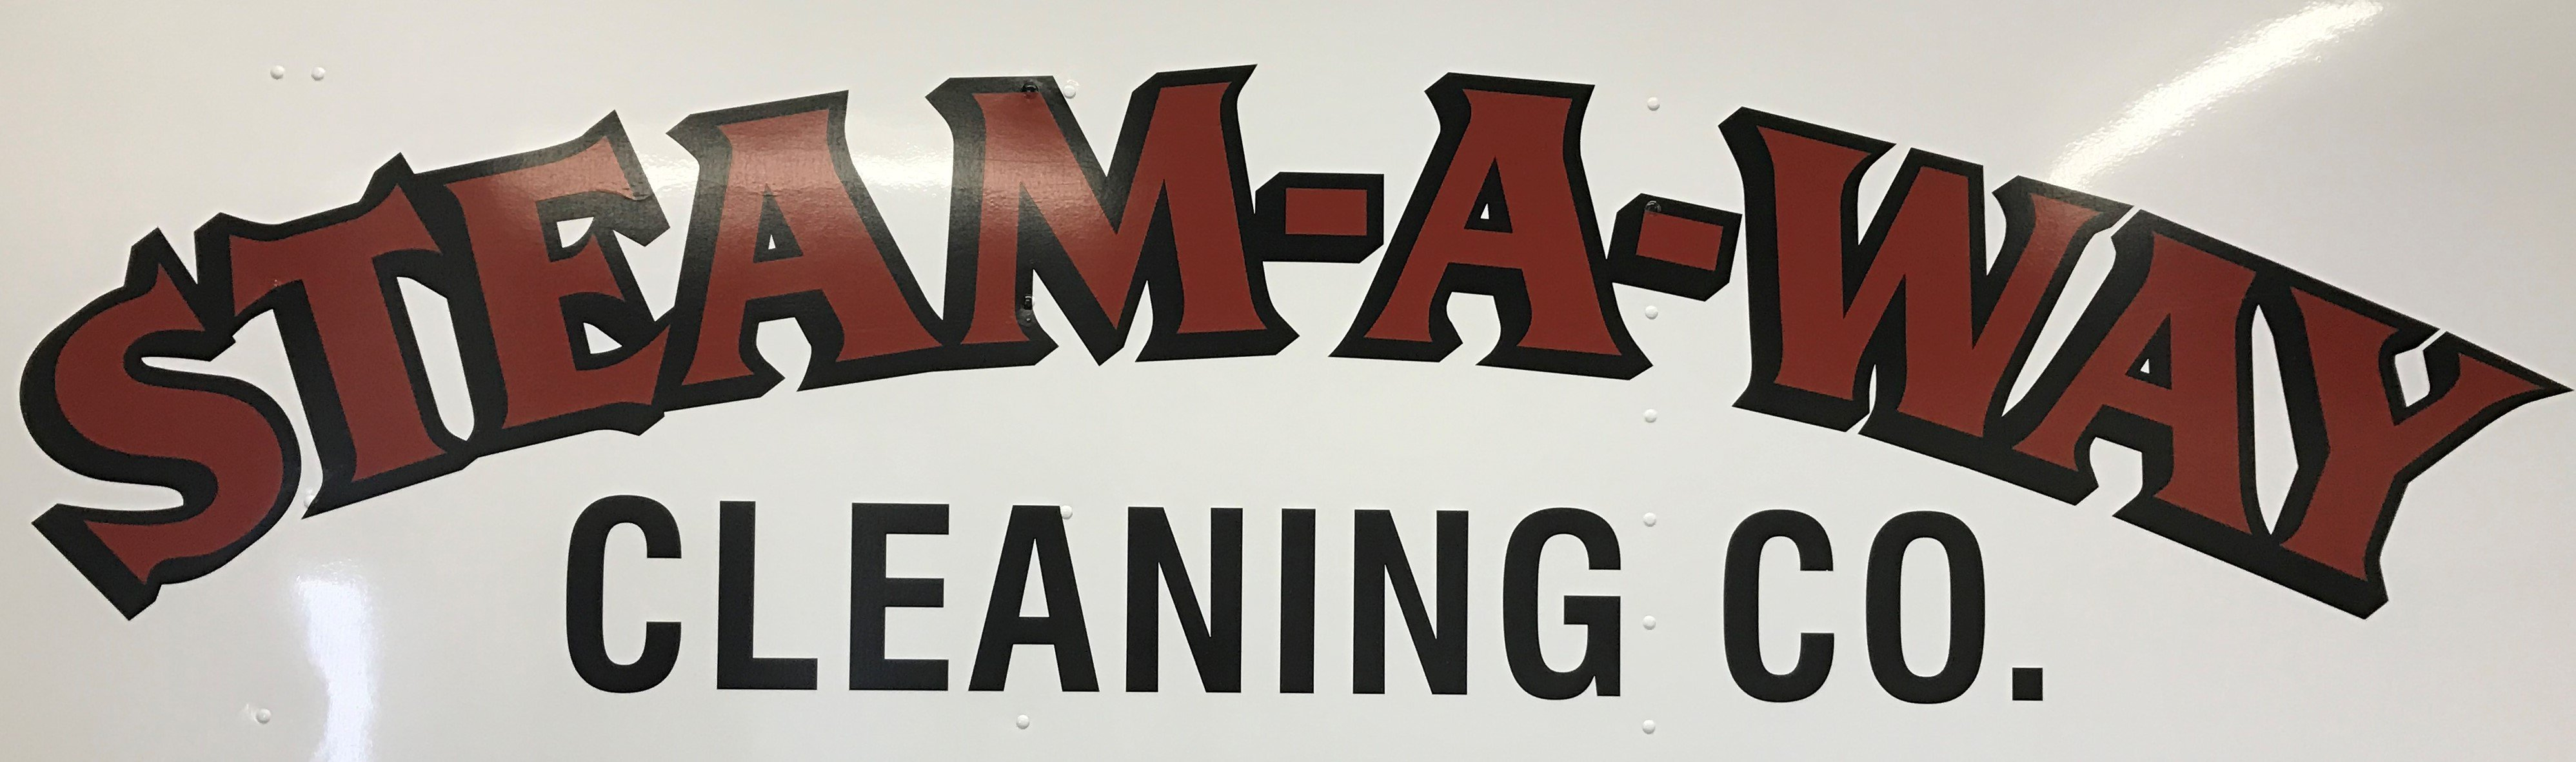 STEAM-A-WAY CLEANING CO INC